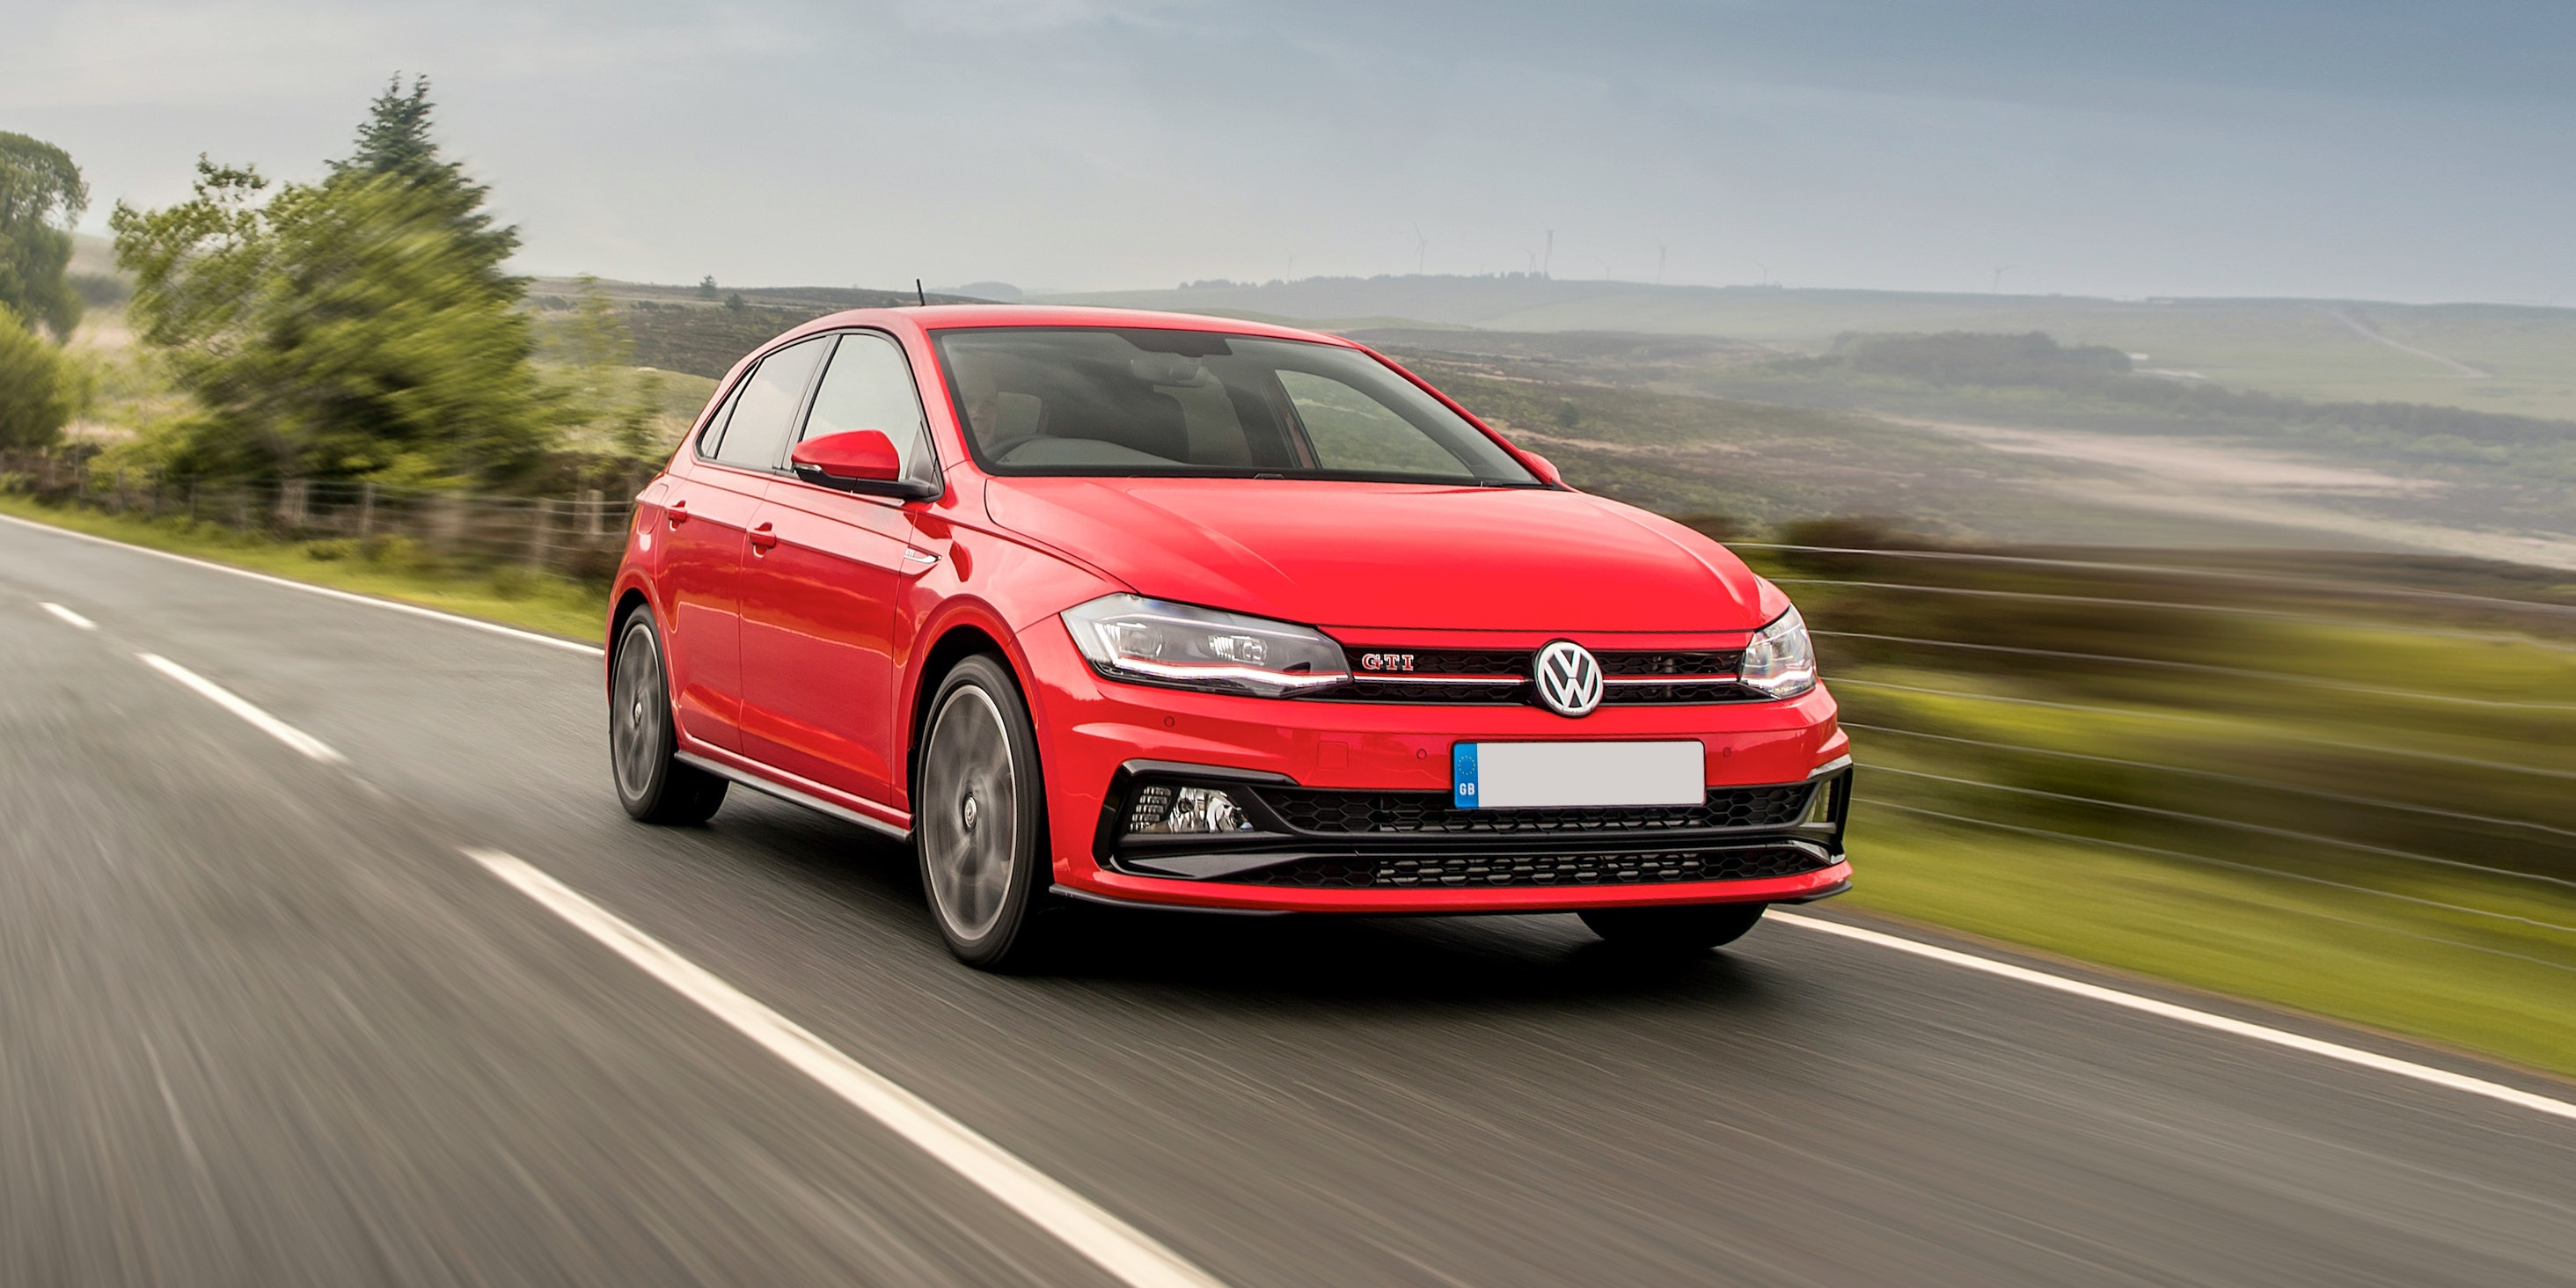 New Volkswagen Polo Gti 2018 Review Carwow